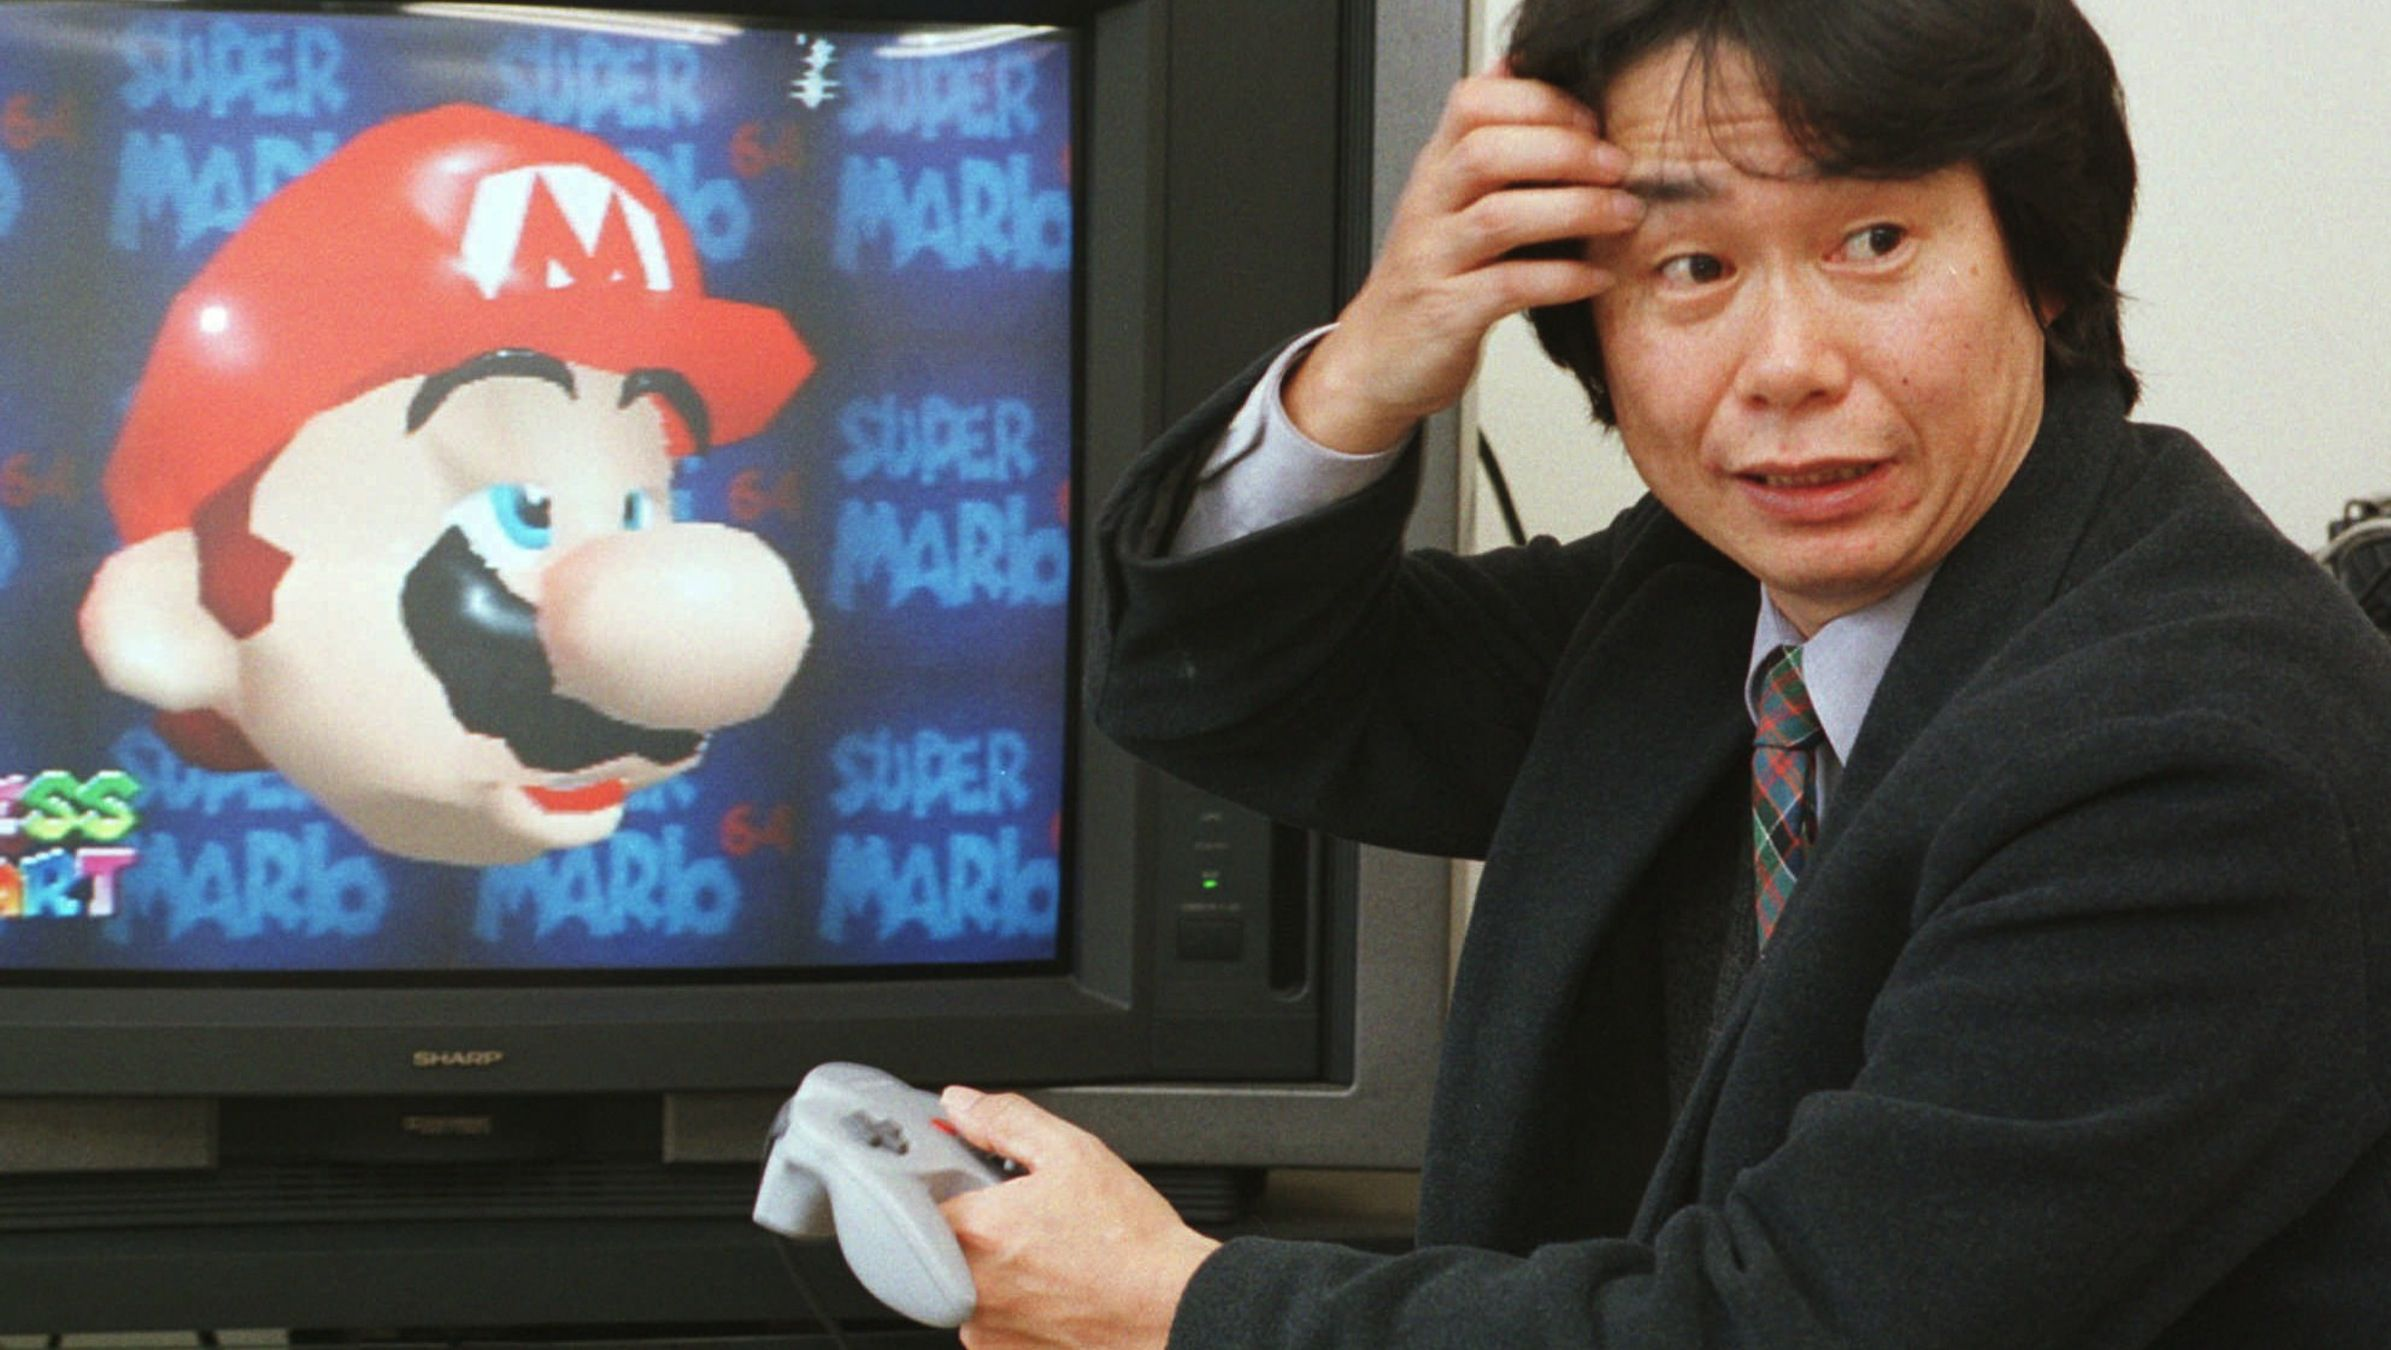 "ADVANCE FOR JAPAN-PROFILE-NINTENDO INVENTOR STORY--Shigeru Miyamoto, creator of Super Mario video game series, scratches eyebrow as he operates his latest blockbuster product, Super Mario 64, in his office at the Nintendo Co. headquarters in Kyoto, southwest of Japan, Feb. 6, 1997.   ""I'm so glad I work for a toy-maker,"" Miyamoto, 44, said with a smile. ""I view the company as a patron and sponsor.""   (AP Photo/Atsushi Tsukada)"